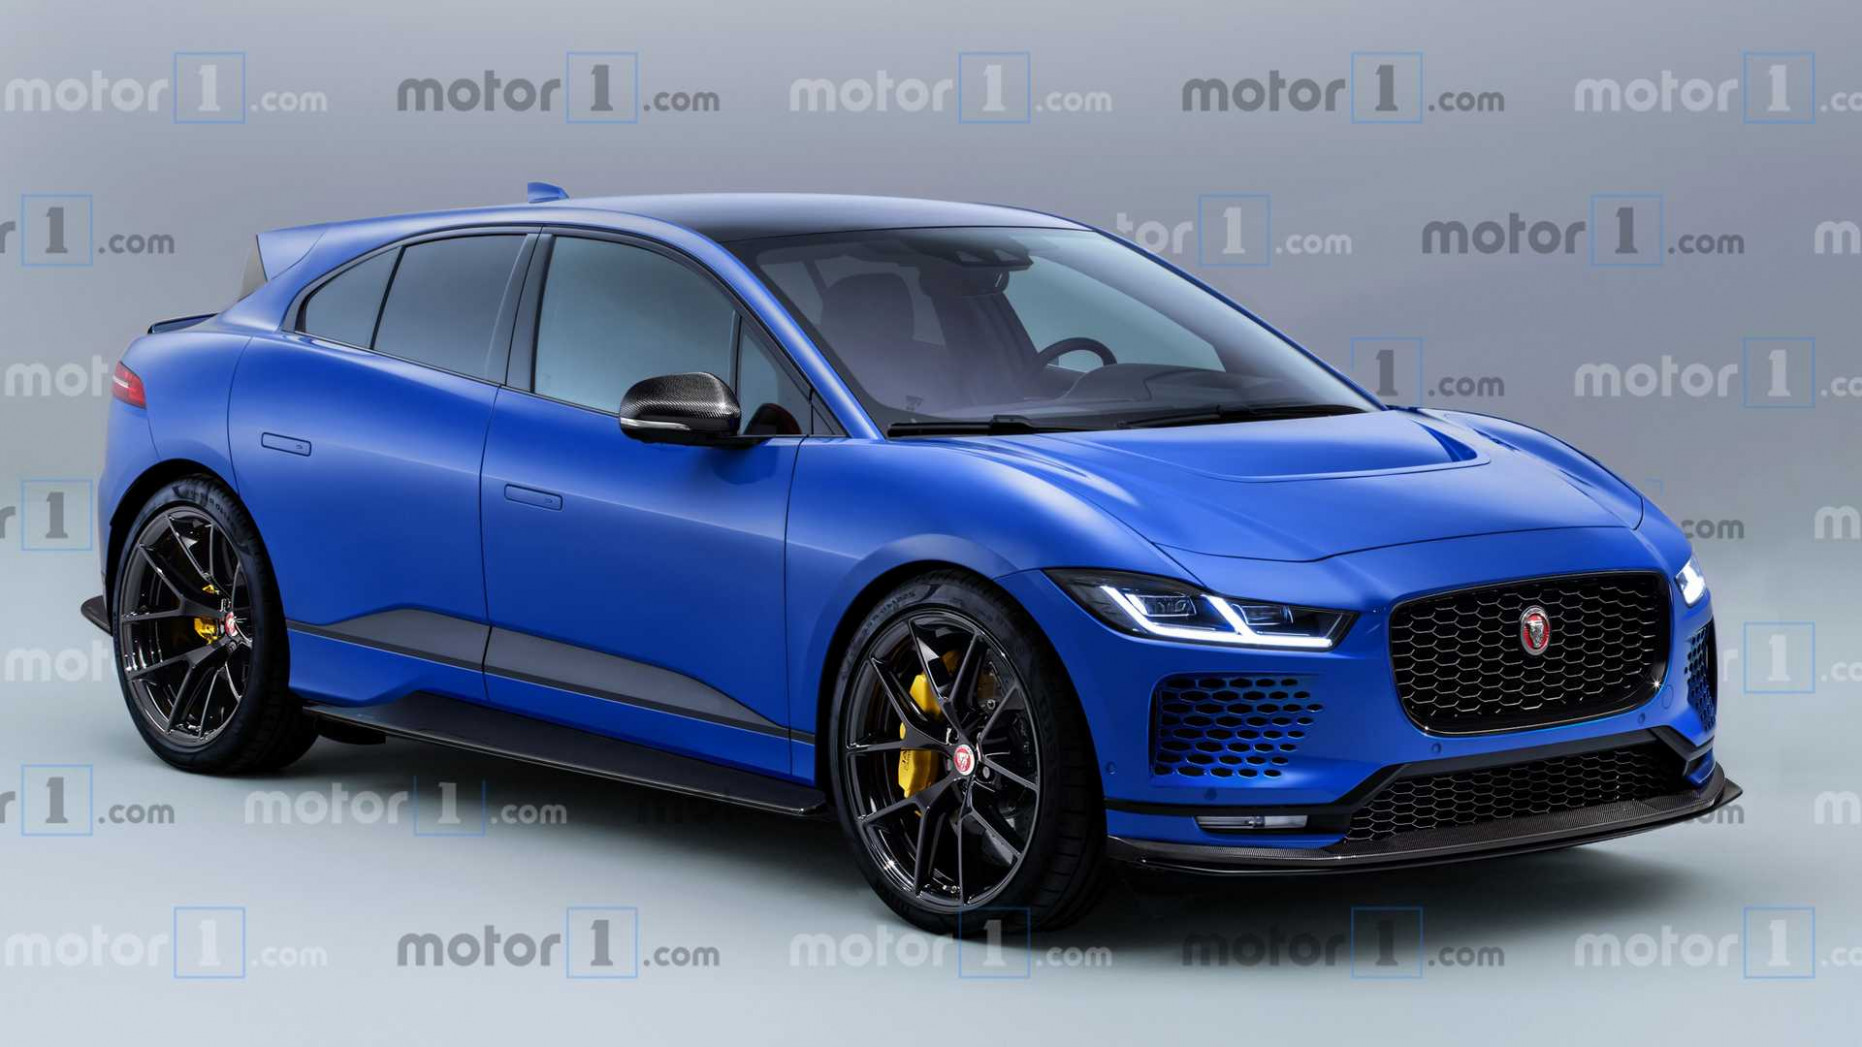 Jaguar I-Pace SVR Rendering Previews The Performance Electric SUV